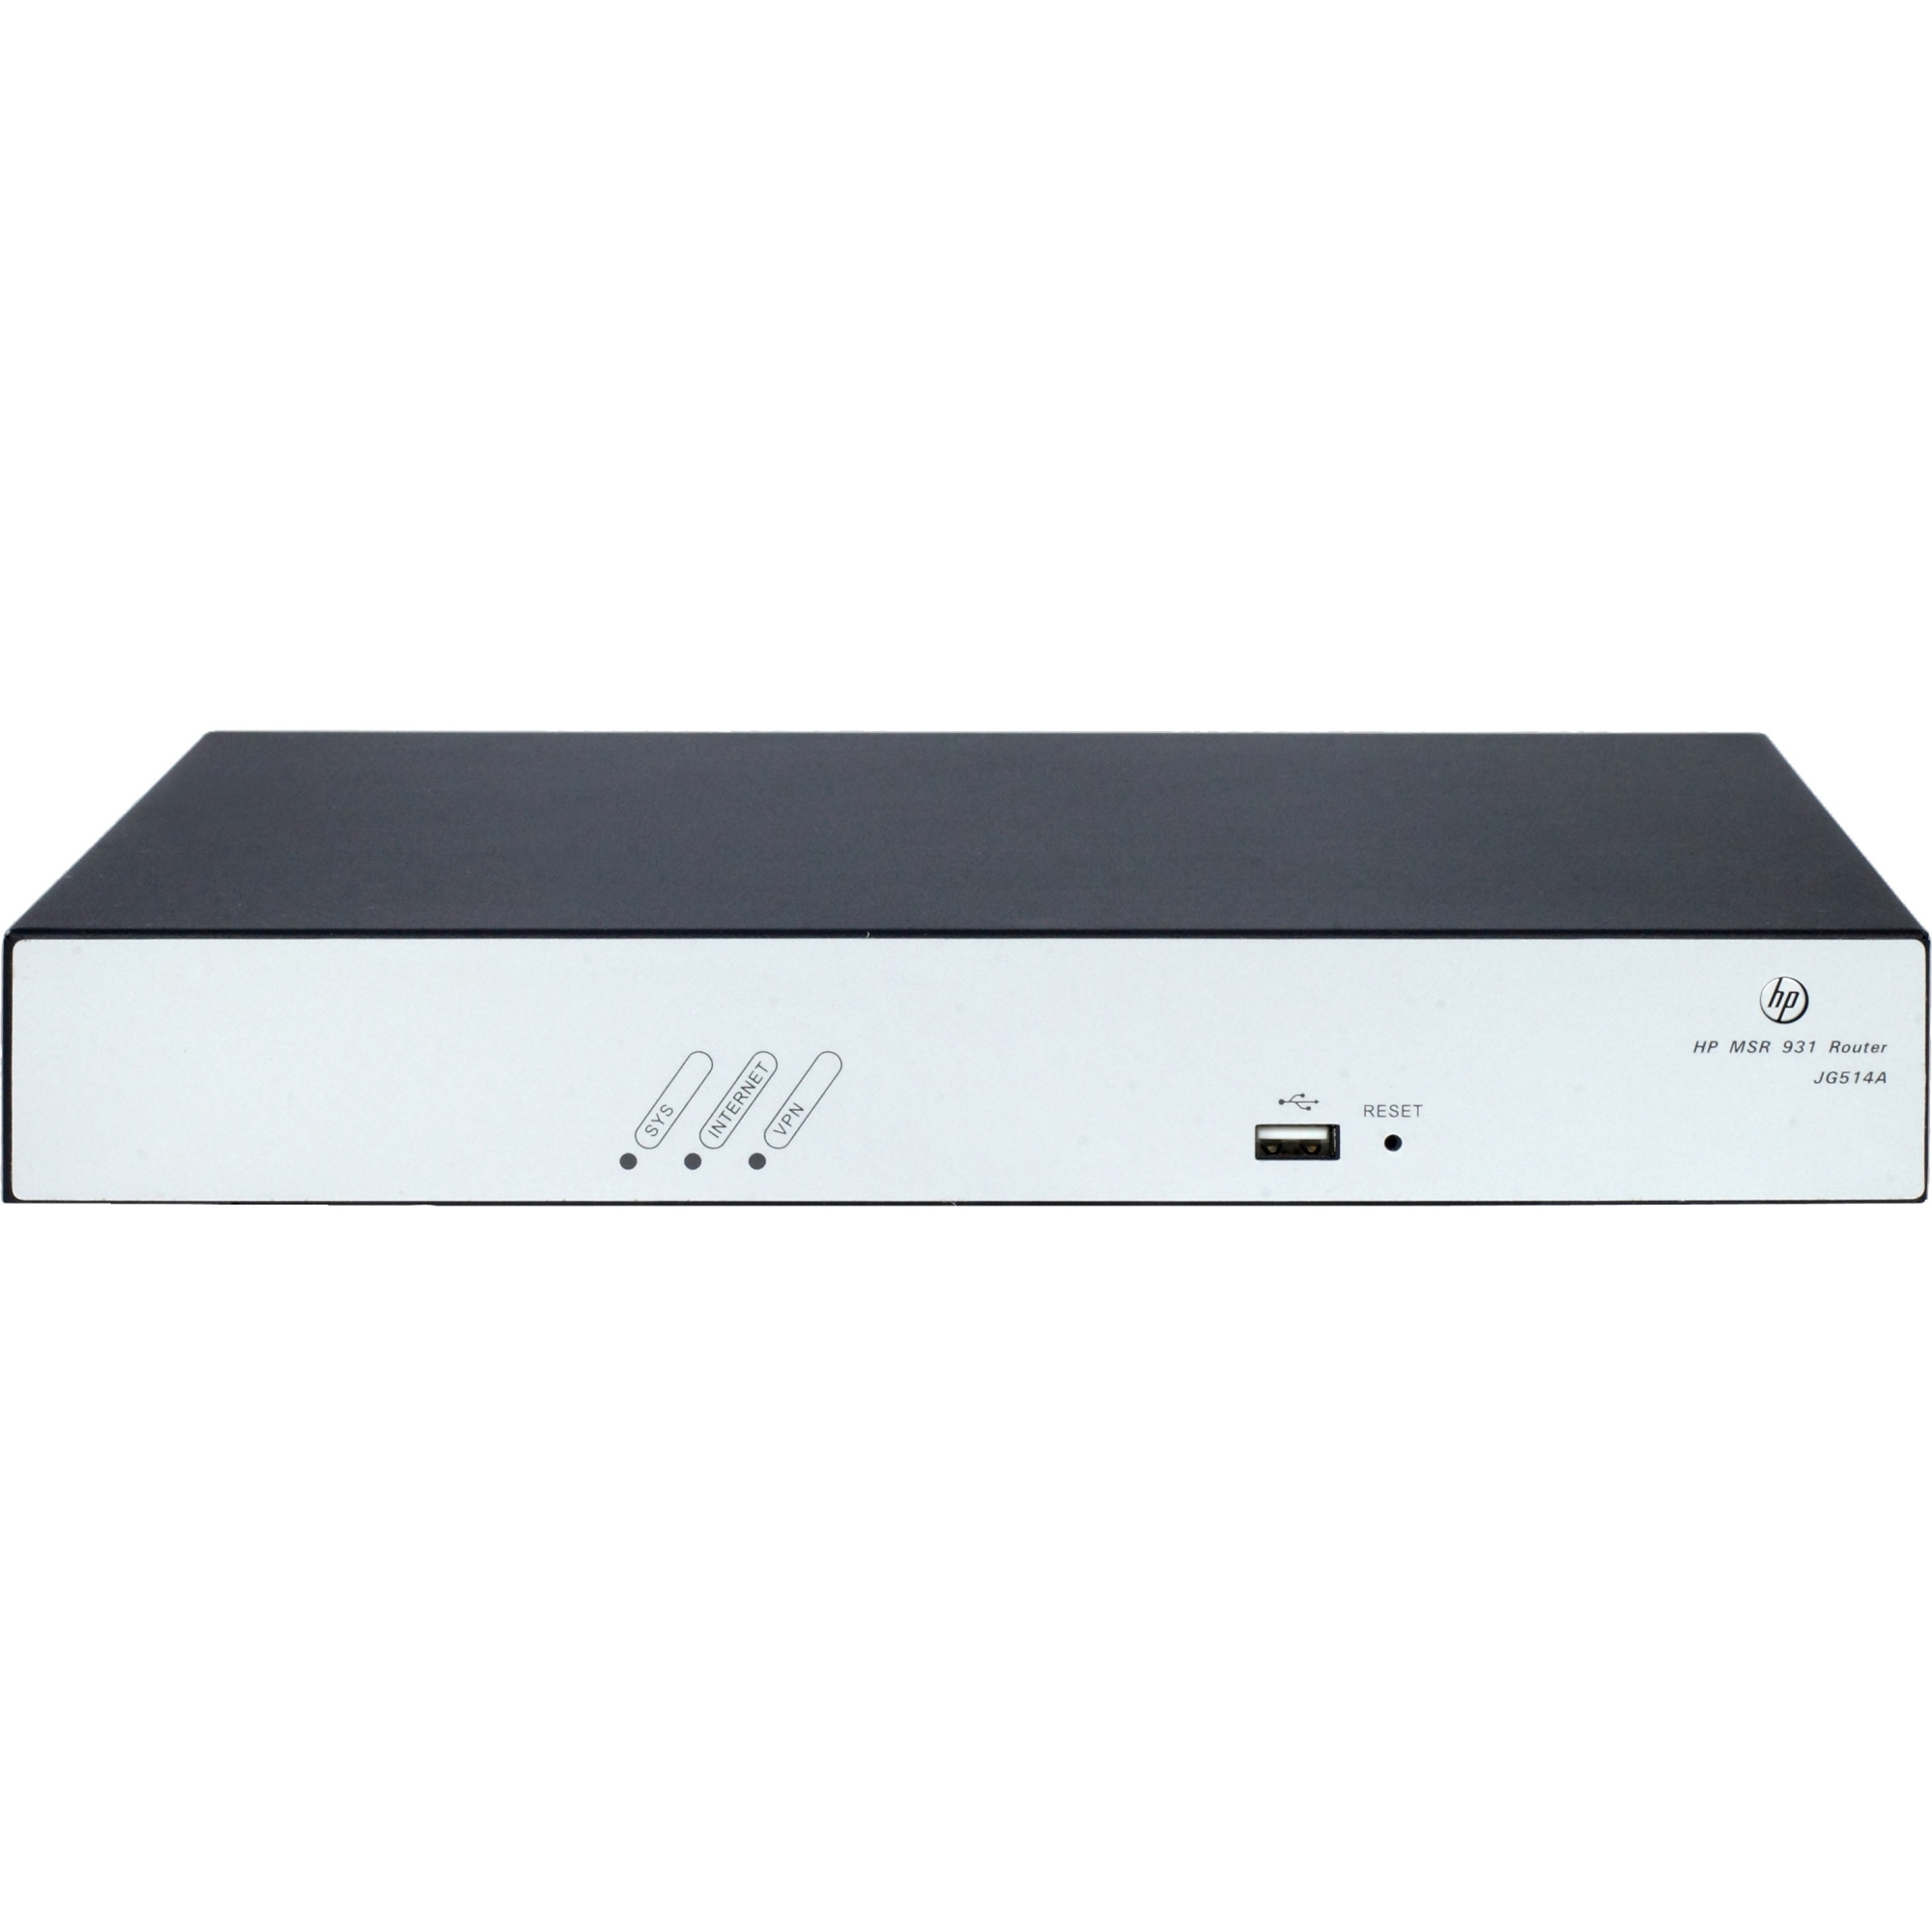 MSR931 Router - Router - 4-port switch - GigE -